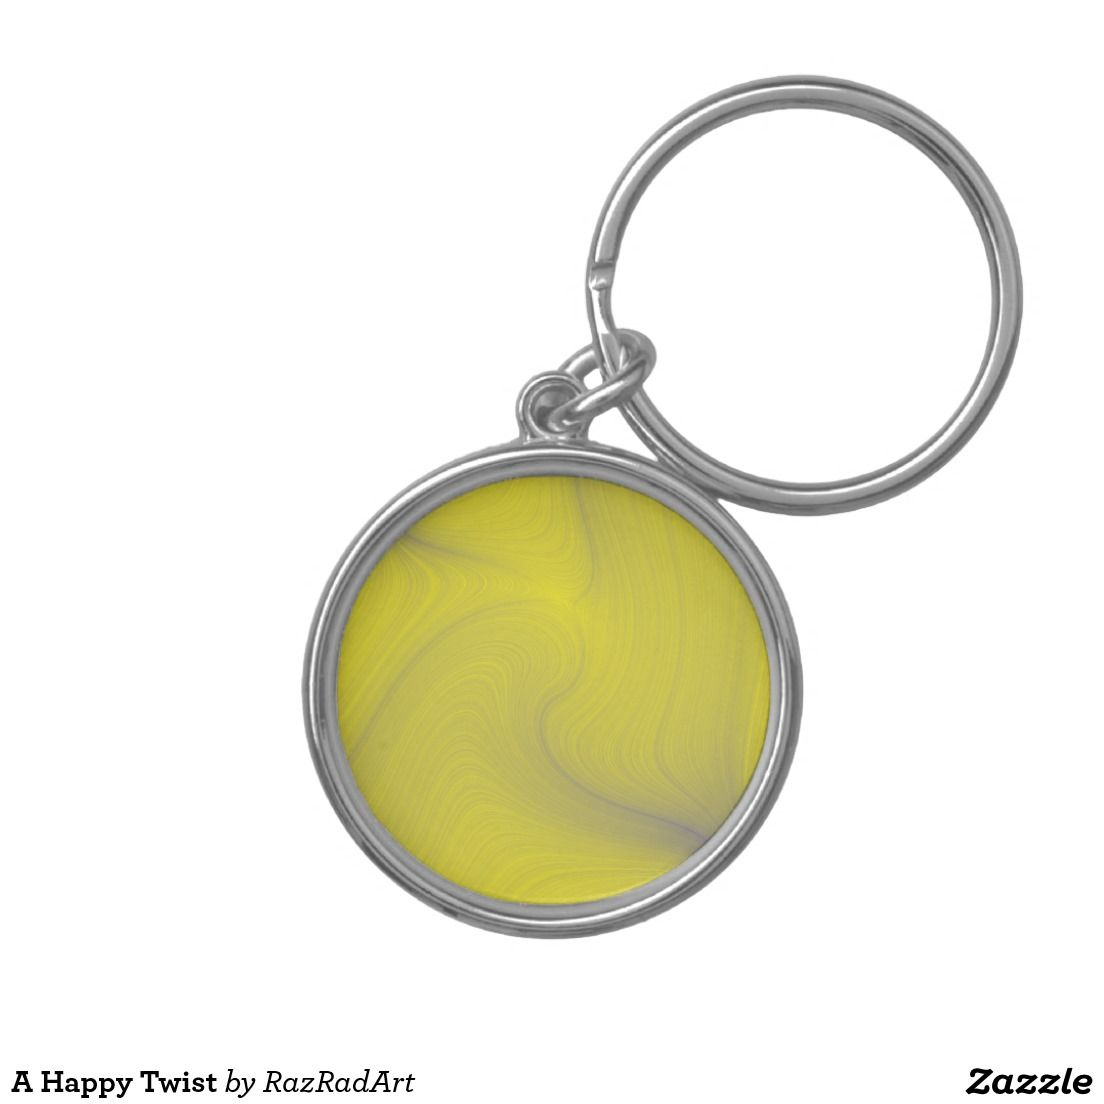 A Happy Twist Silver-Colored Round Keychain by RazRadArt